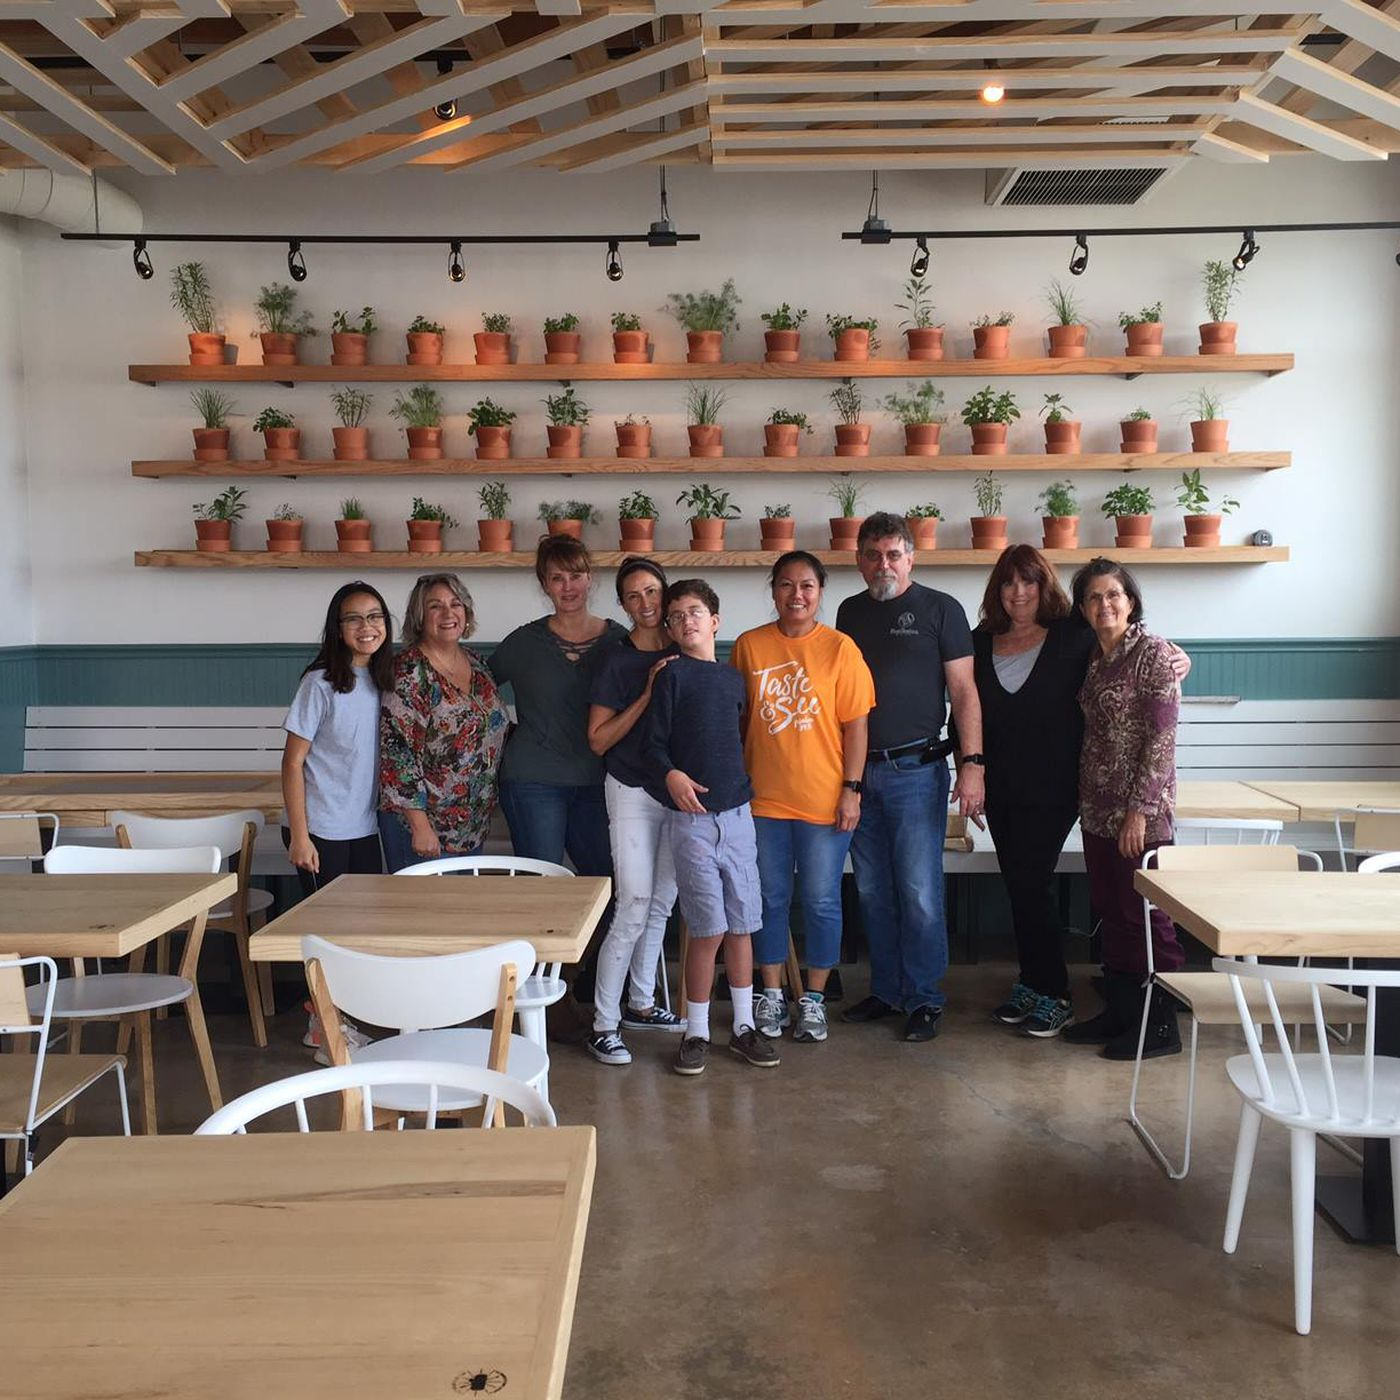 Fort Worth Now Has A PayWhatYouCan Restaurant Eater Dallas - Restaurant community table